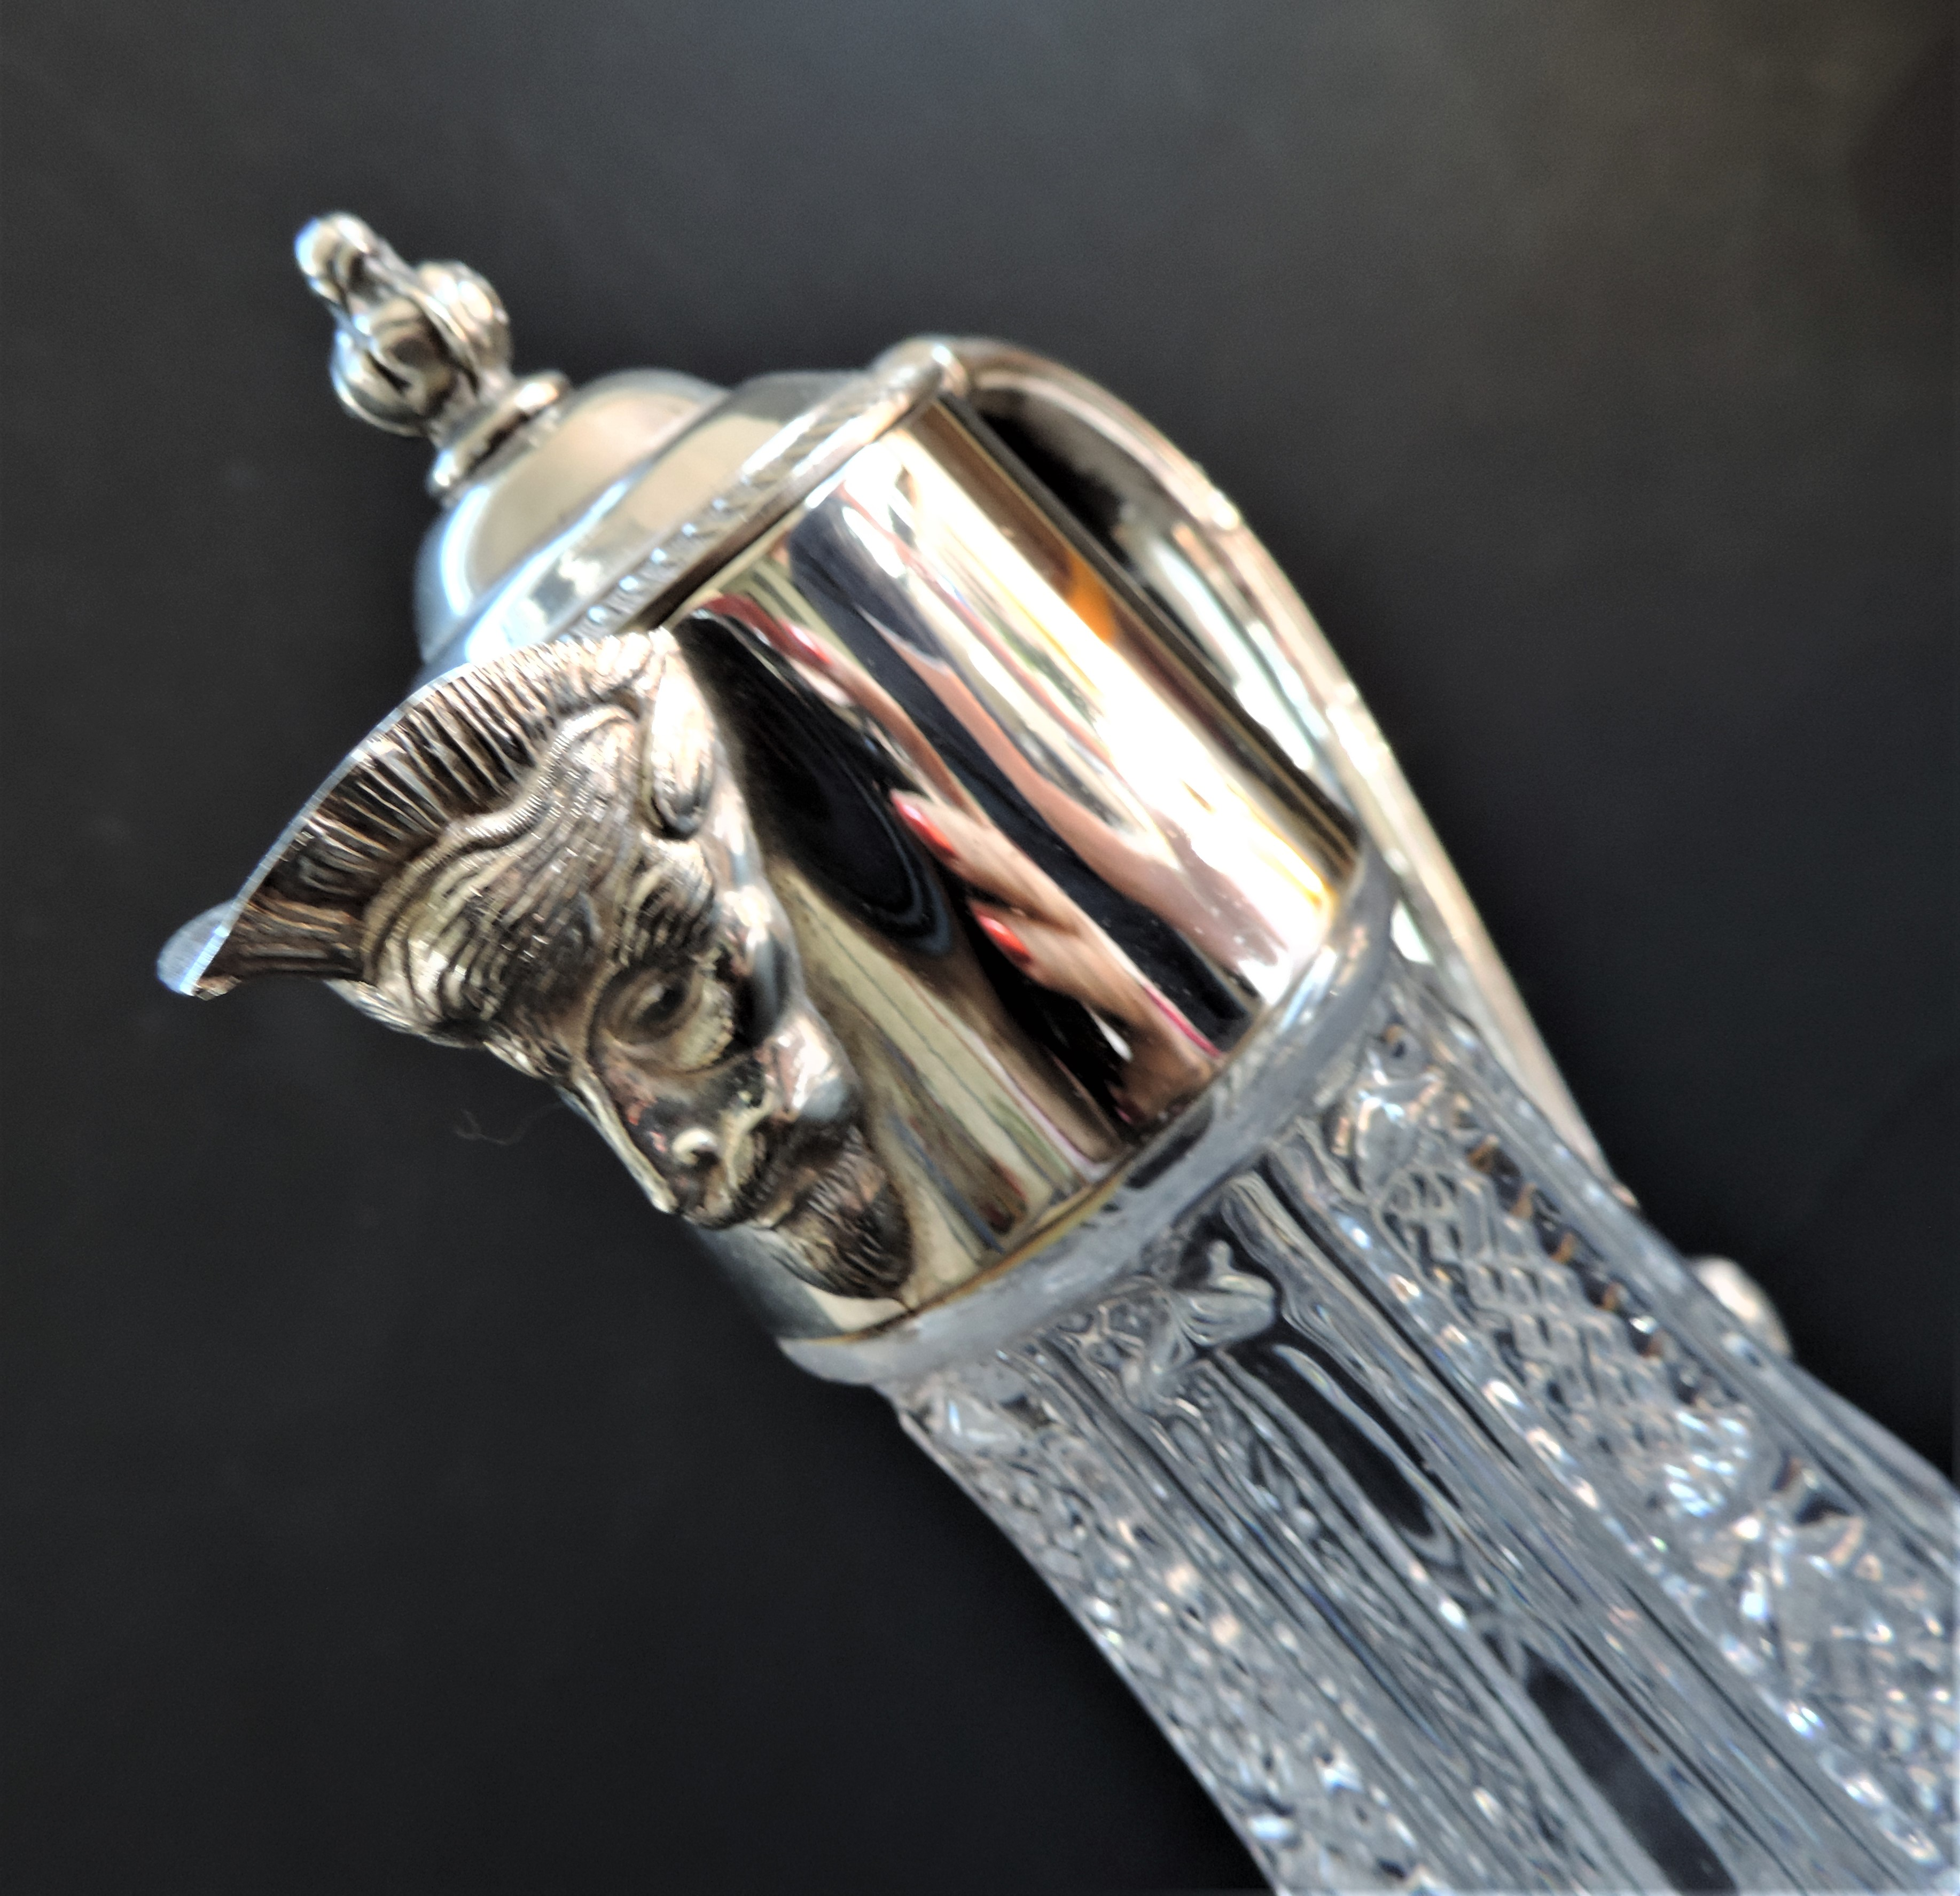 Hand-Cut Crystal And Silver Plate Bacchus Claret Jug - Image 4 of 4